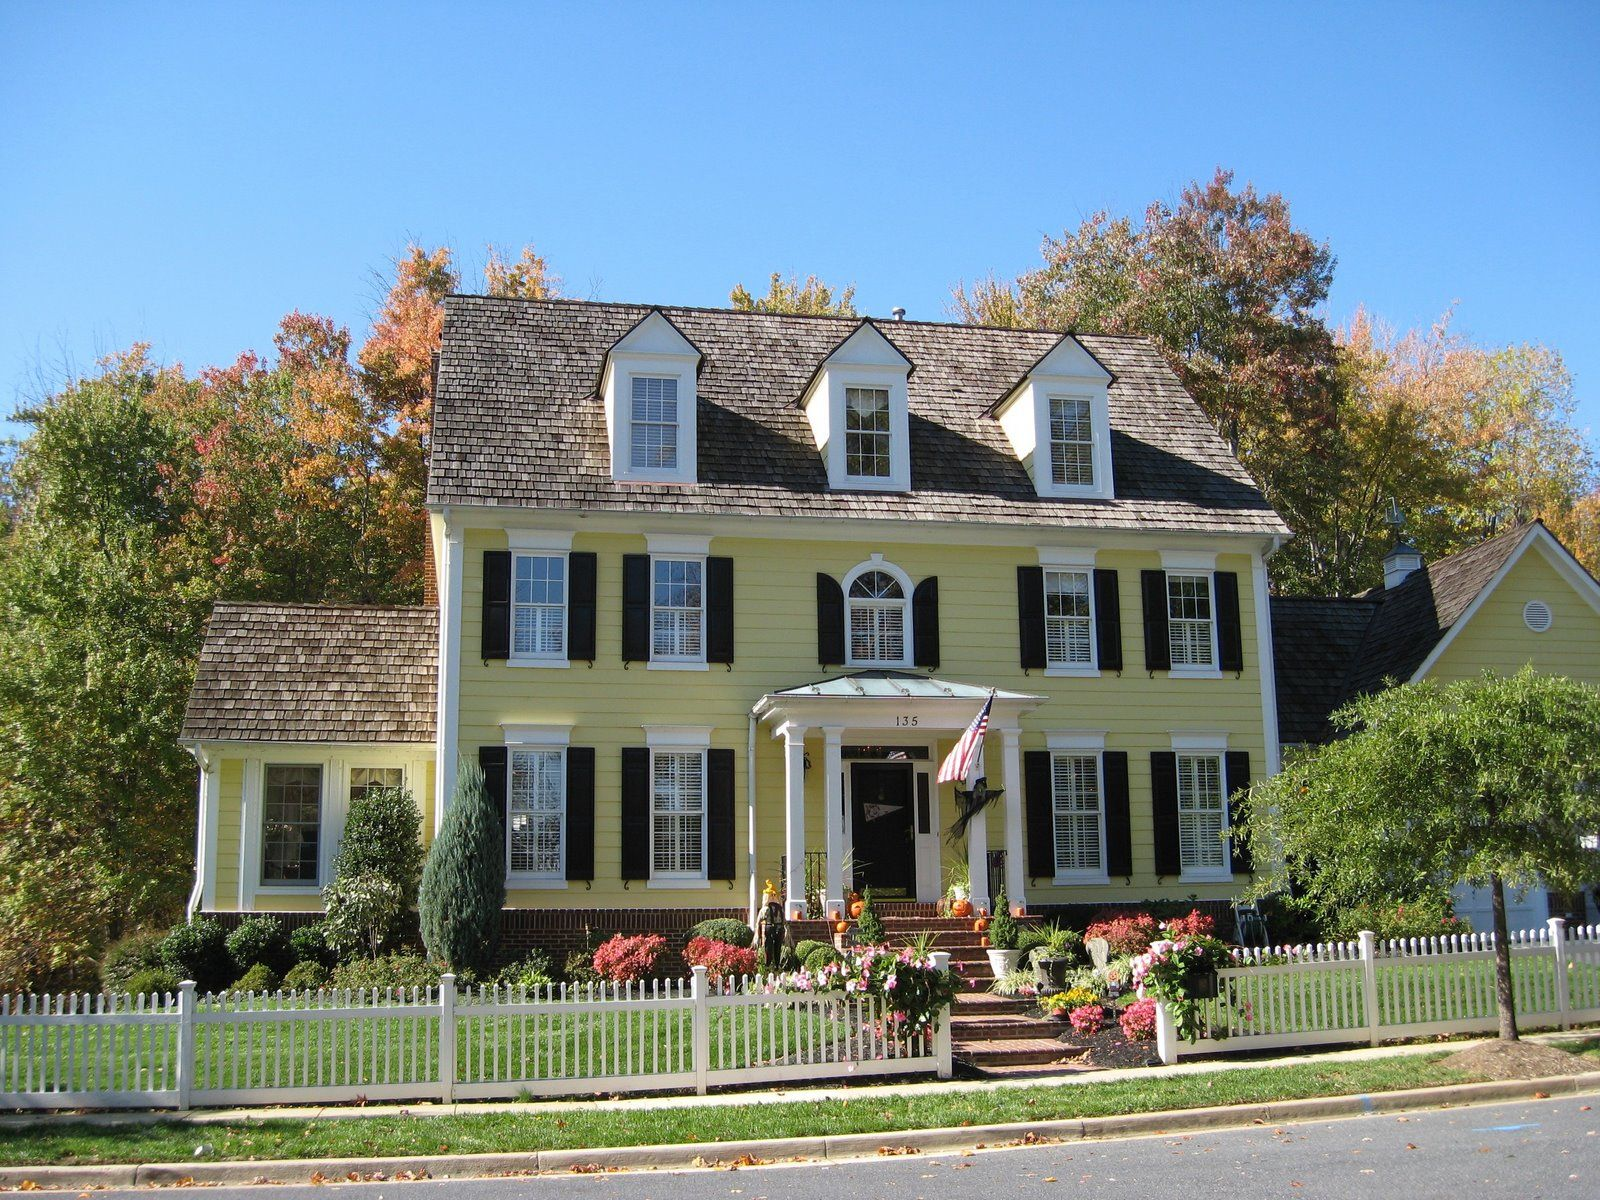 House shutters exterior colors yellow body white trim - Exterior house colors with black trim ...